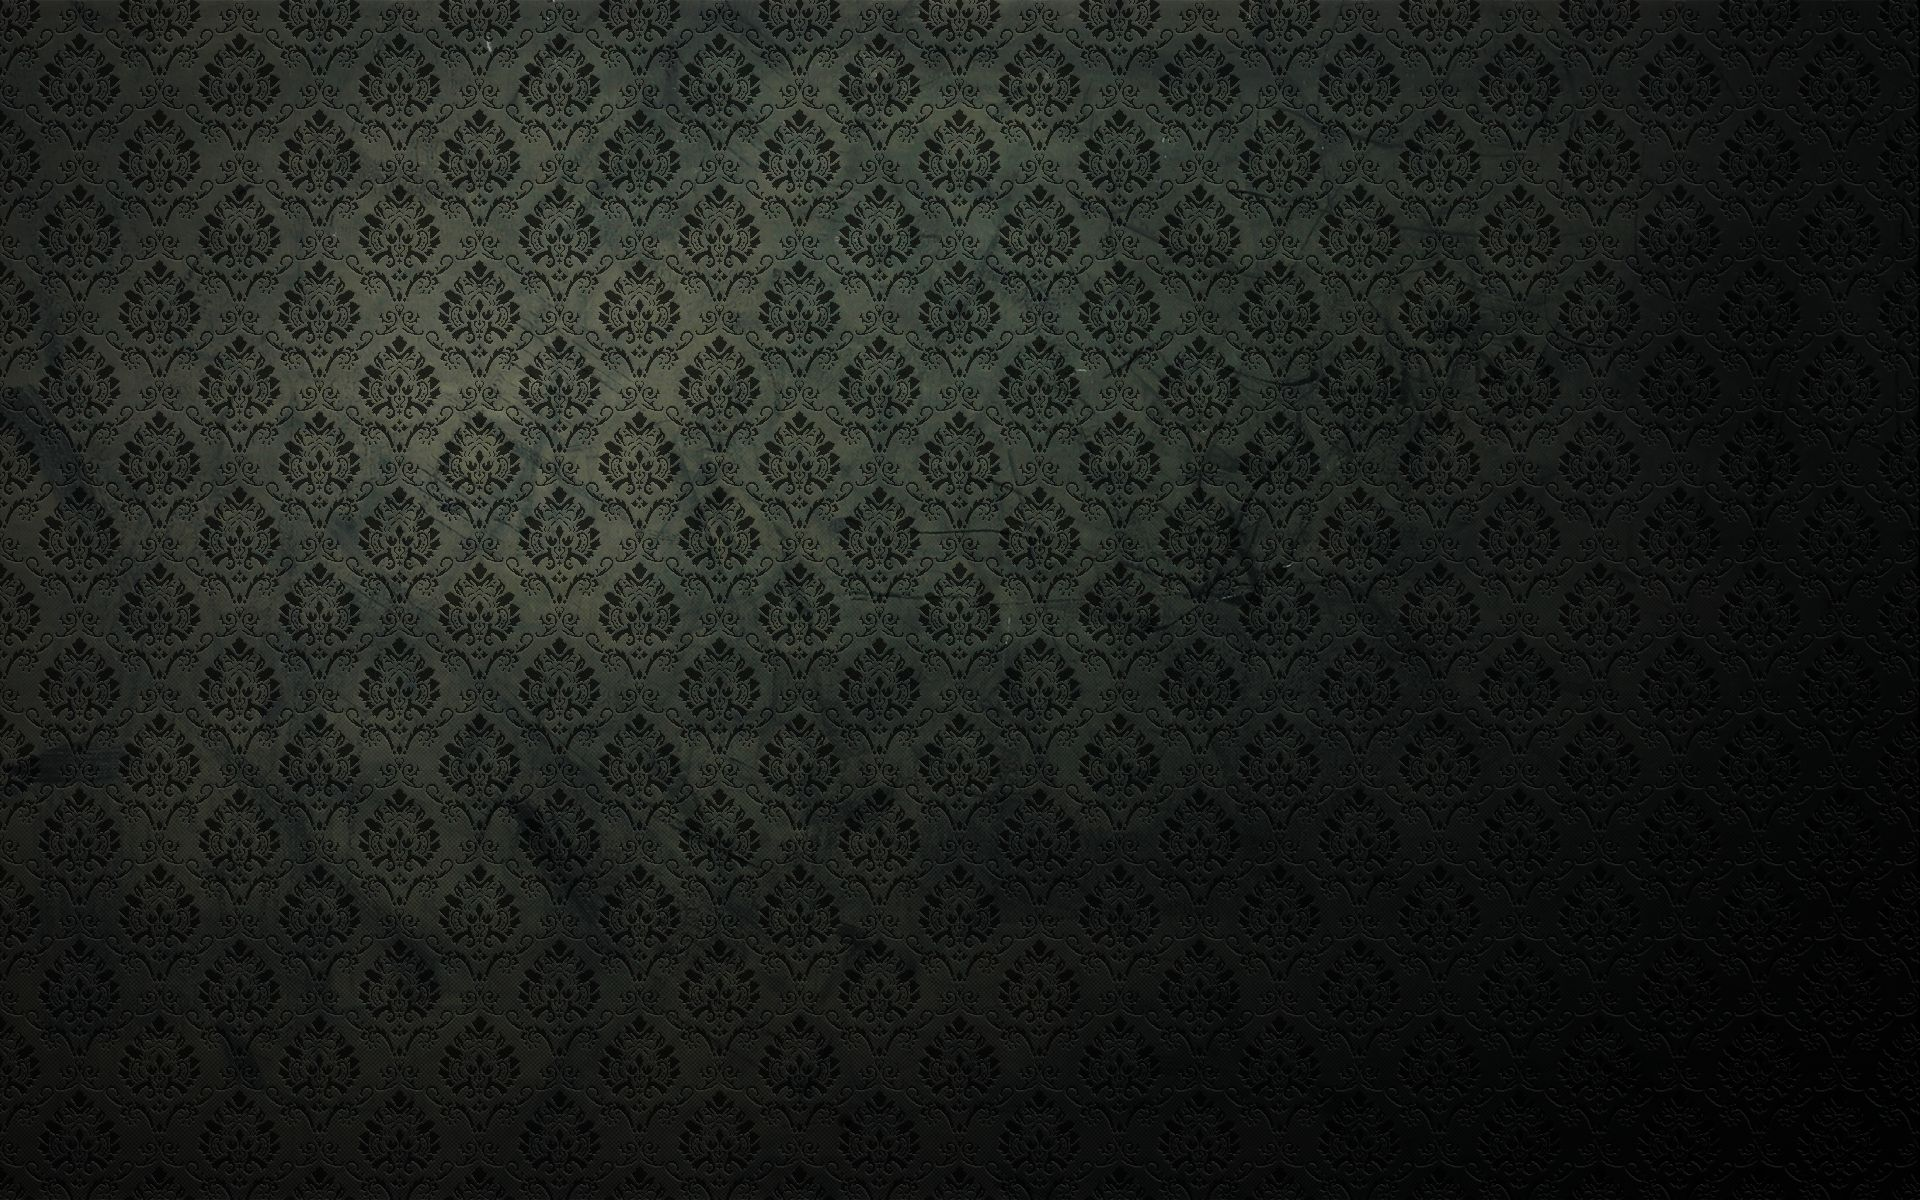 Abstract Background 007 wallpaper 1920x1200